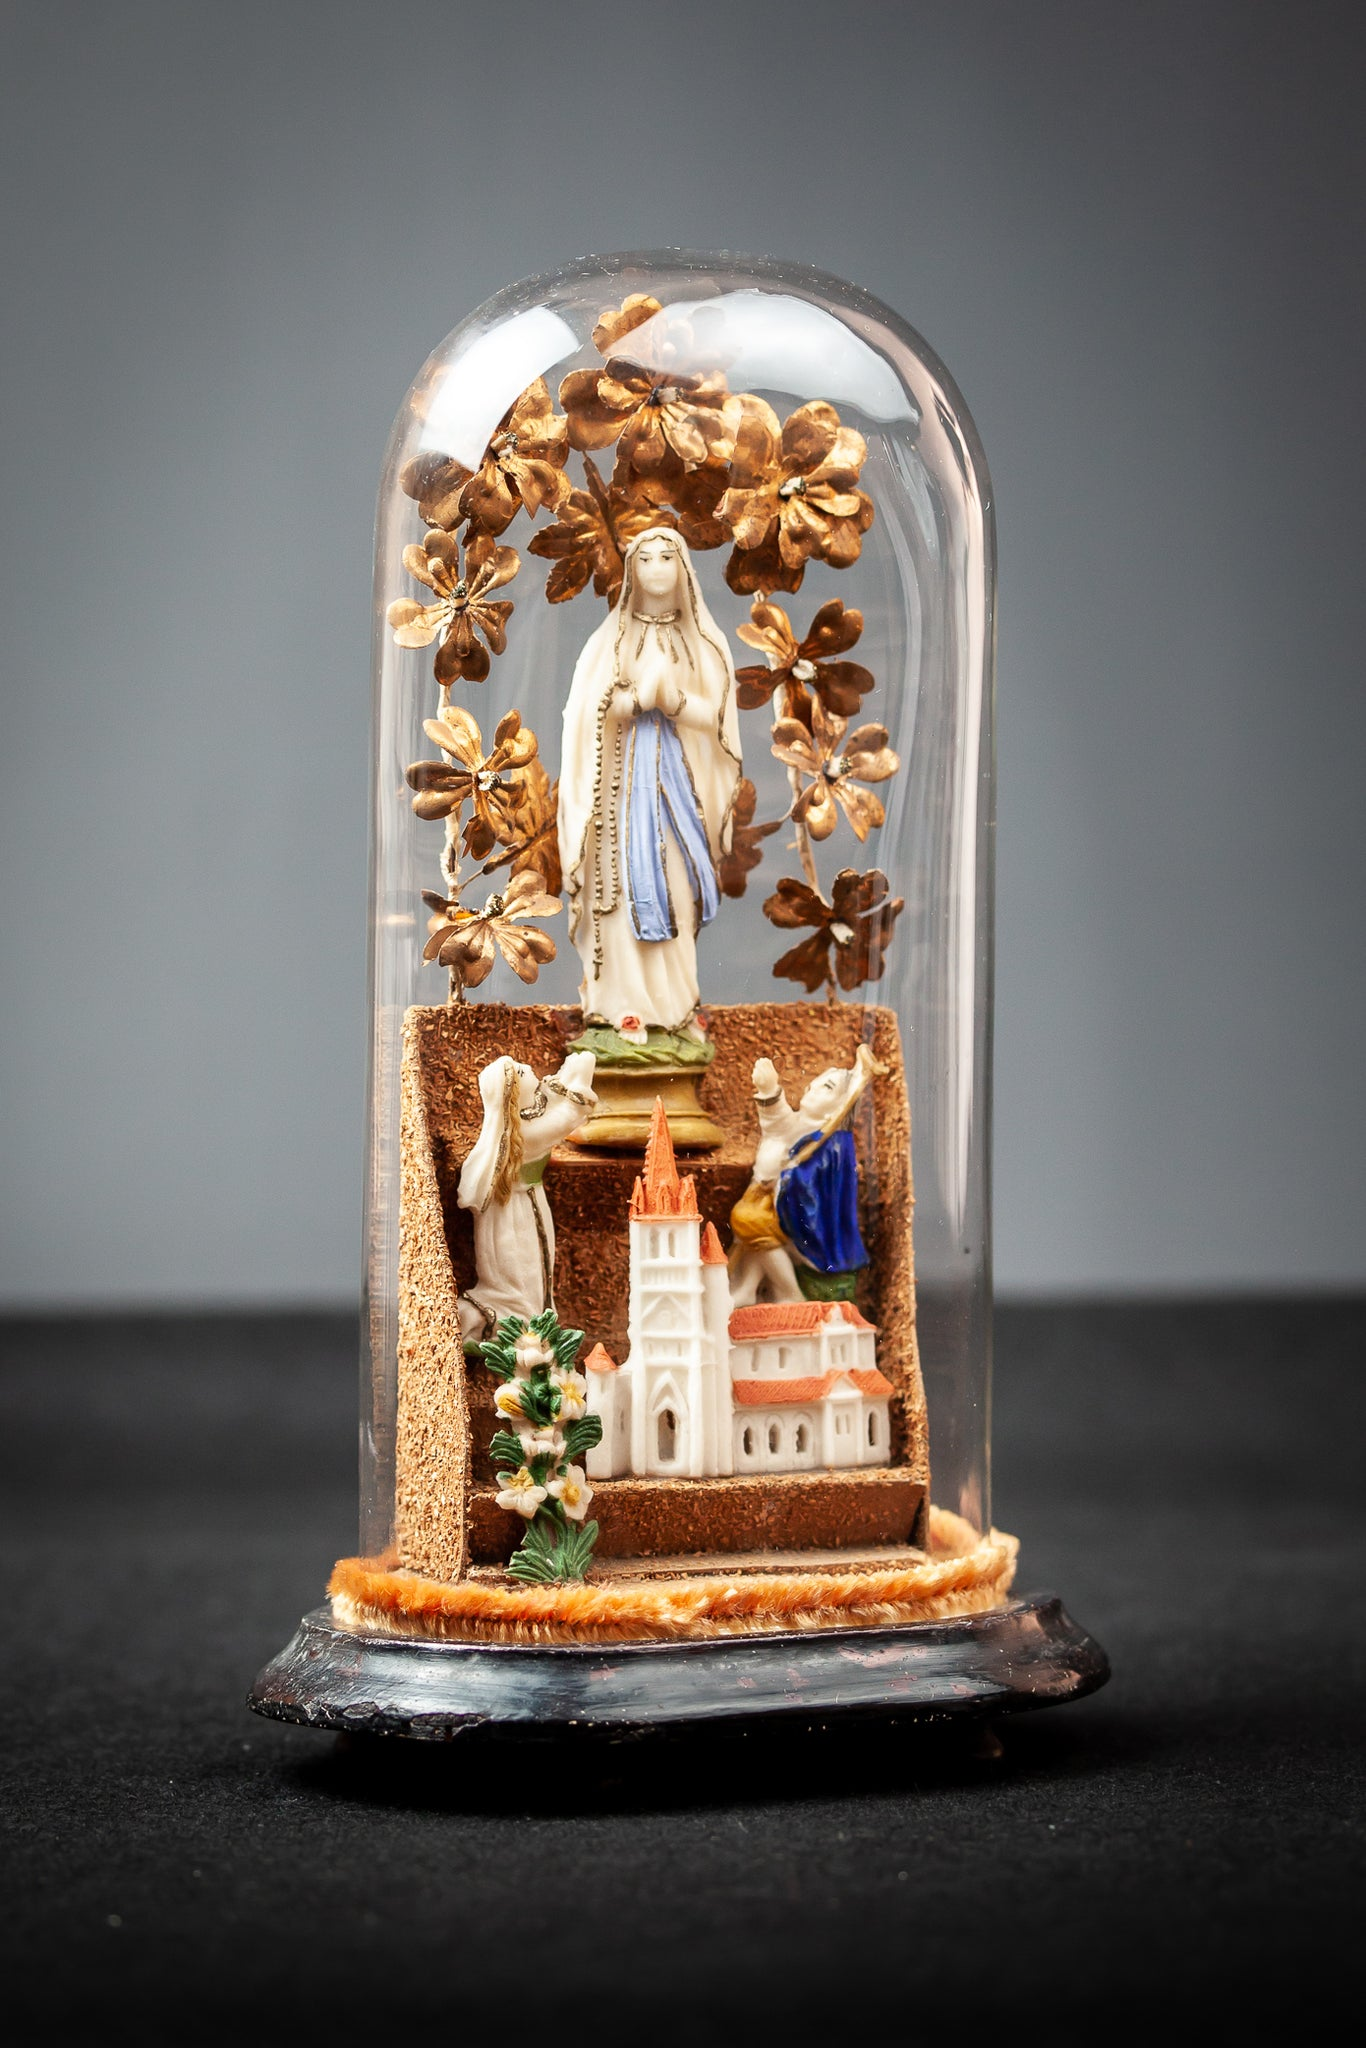 Virgin Mary Children Cathedral Tragacanth Artwork Glass Dome